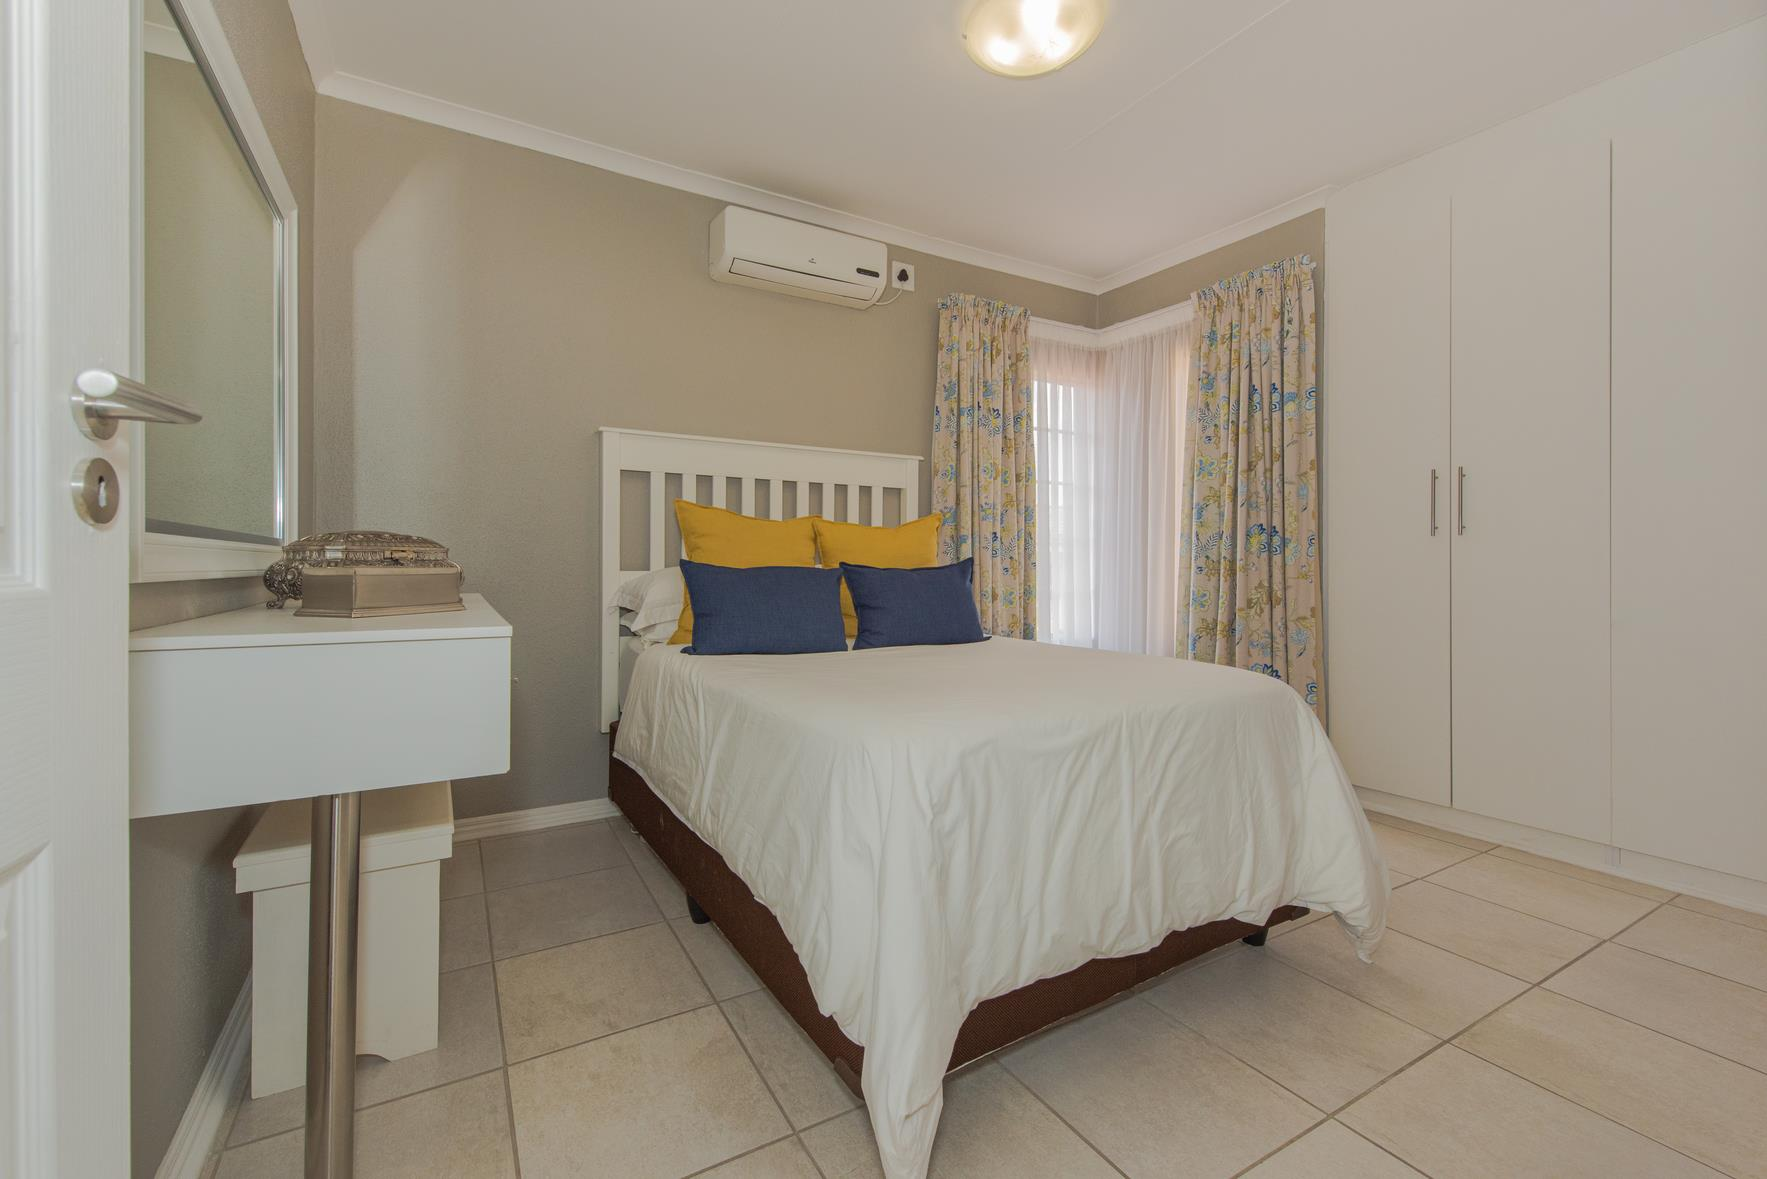 2 Bedroom House For Sale in West Acres